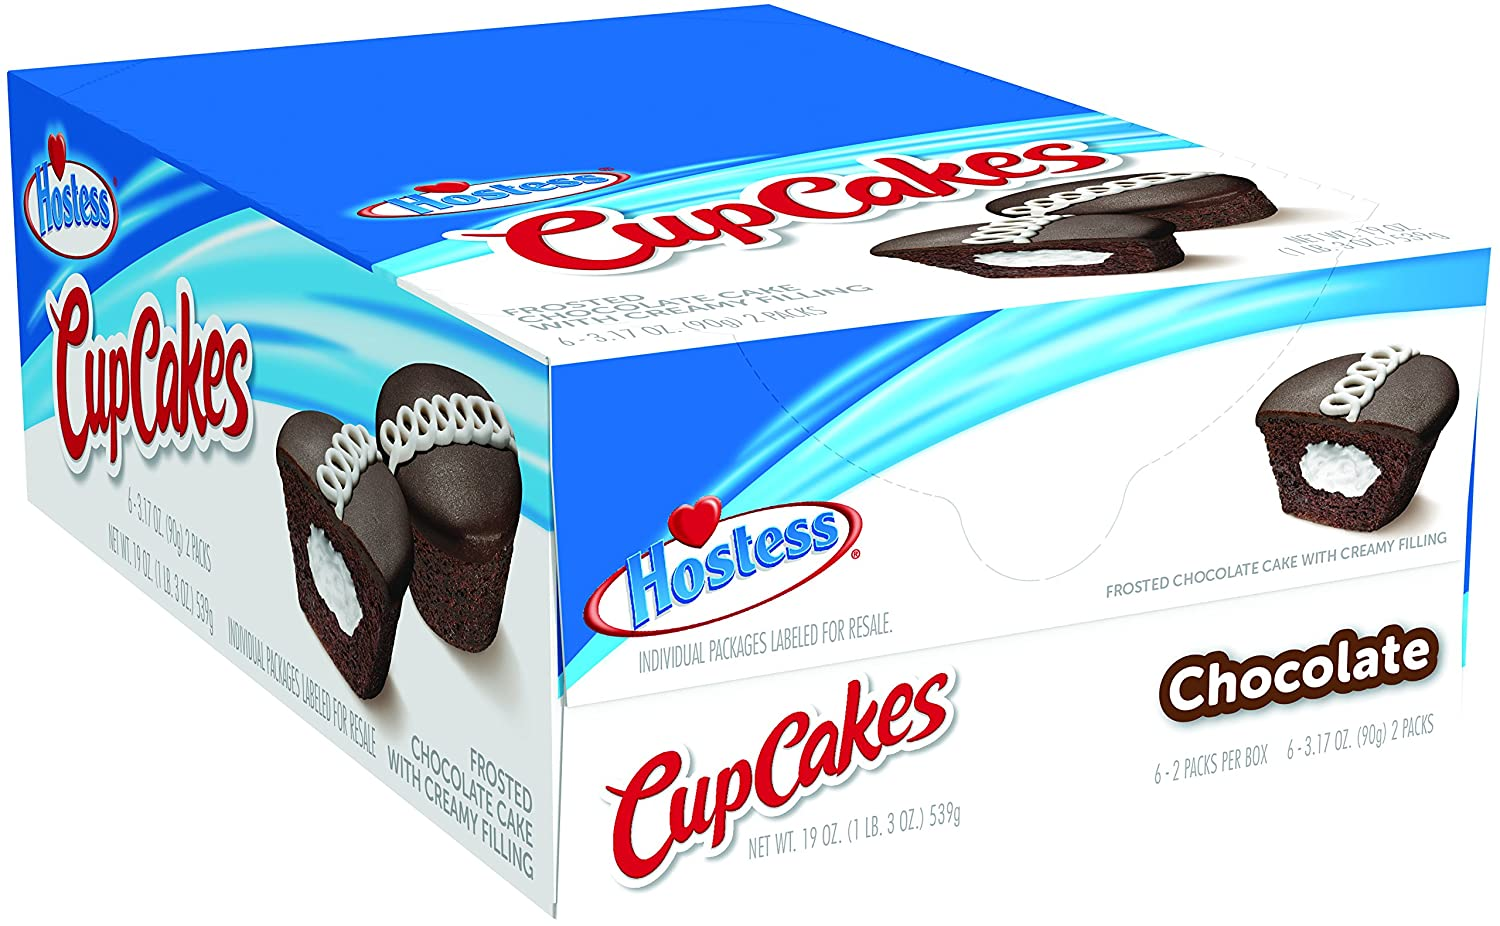 Hostess Cupcakes, Chocolate, 3.17 Ounce, 6 Count